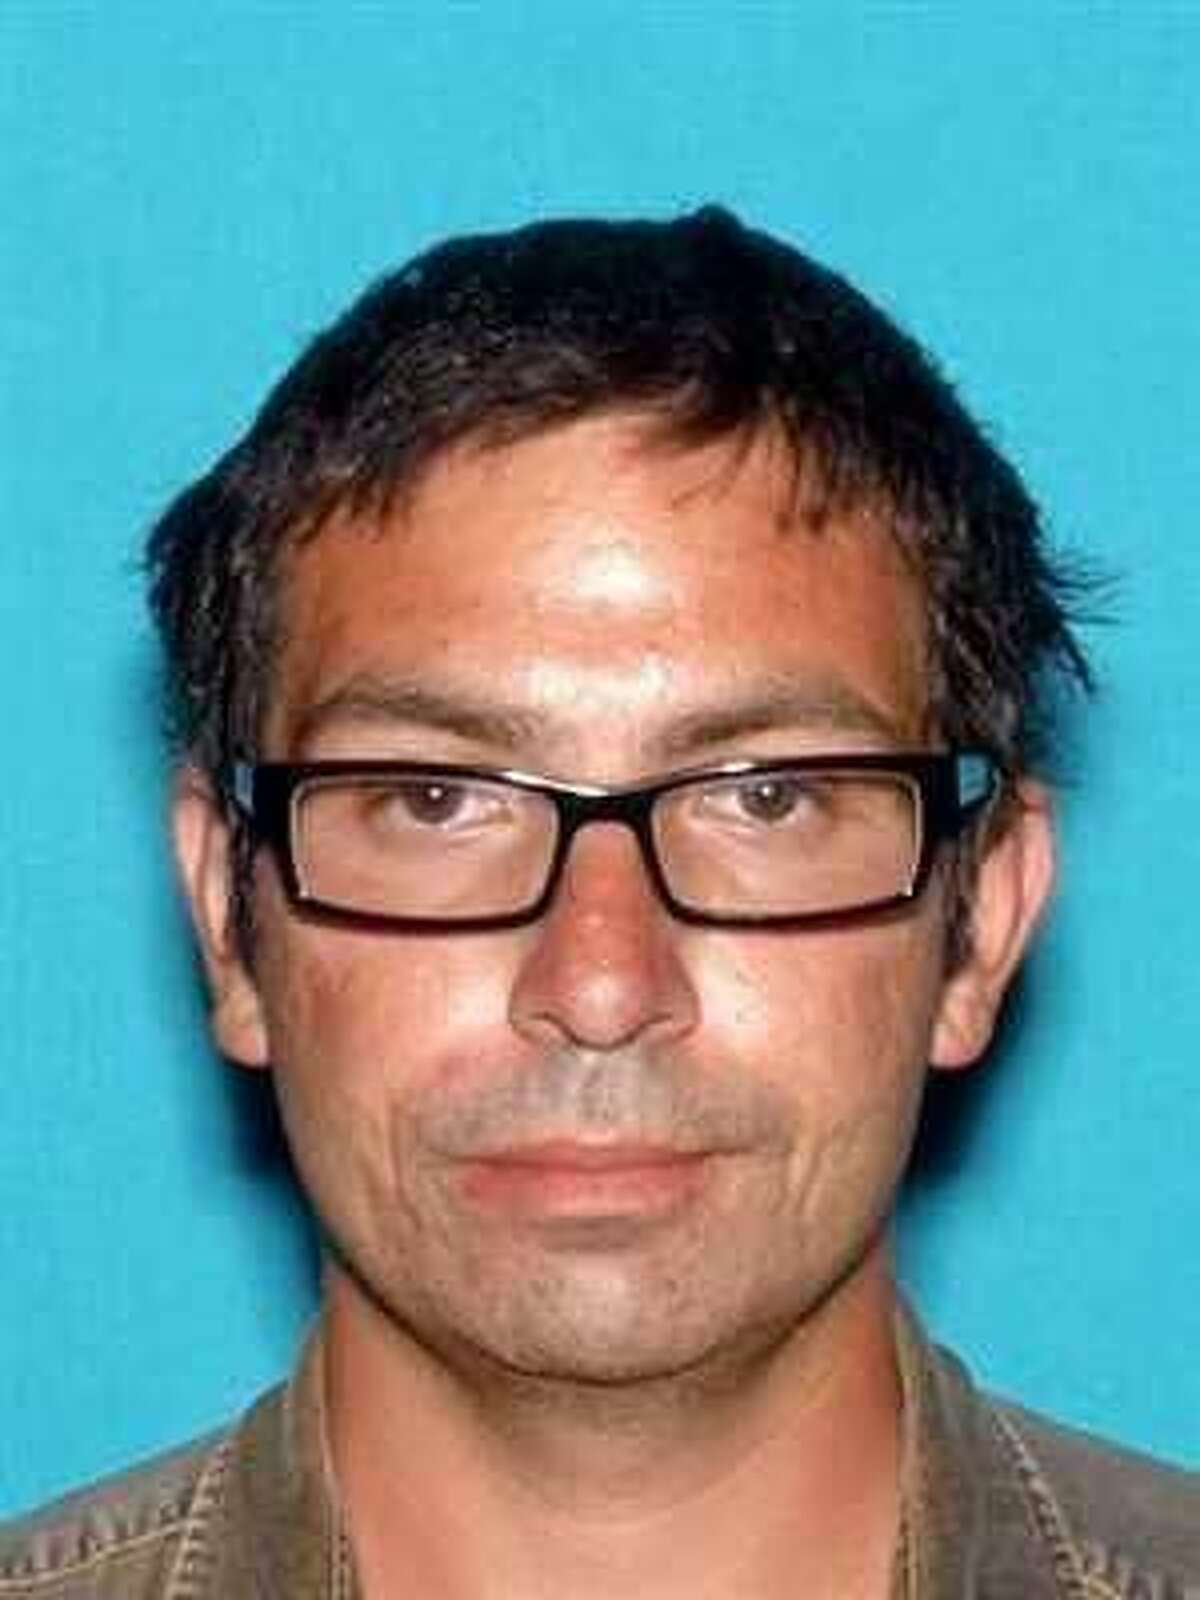 This undated photo released by the Metro Nashville Police Department shows Vincente Montano, the attacker at a movie theater in Antioch, Tenn., Wednesday, Aug. 5, 2015.